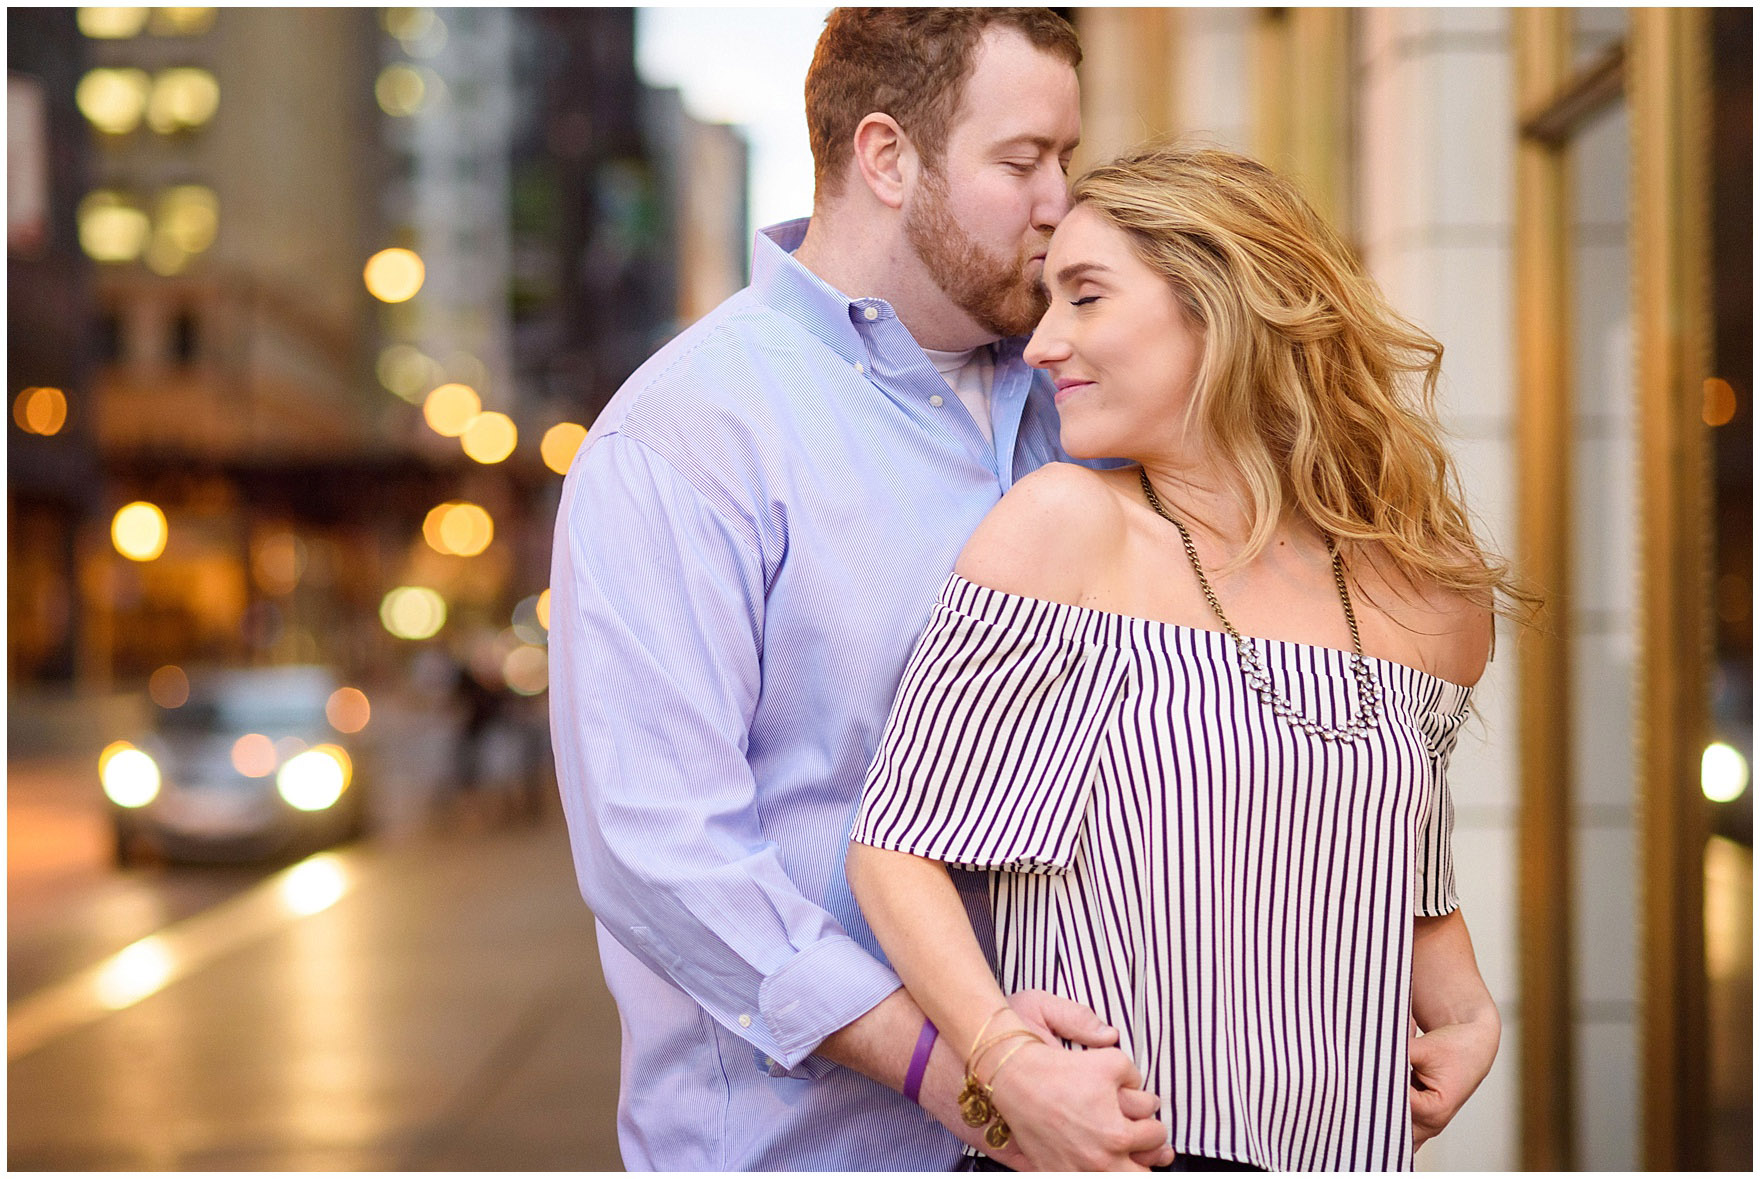 A couple embraces with twinkly streetlights during a downtown Chicago city engagement photography session.